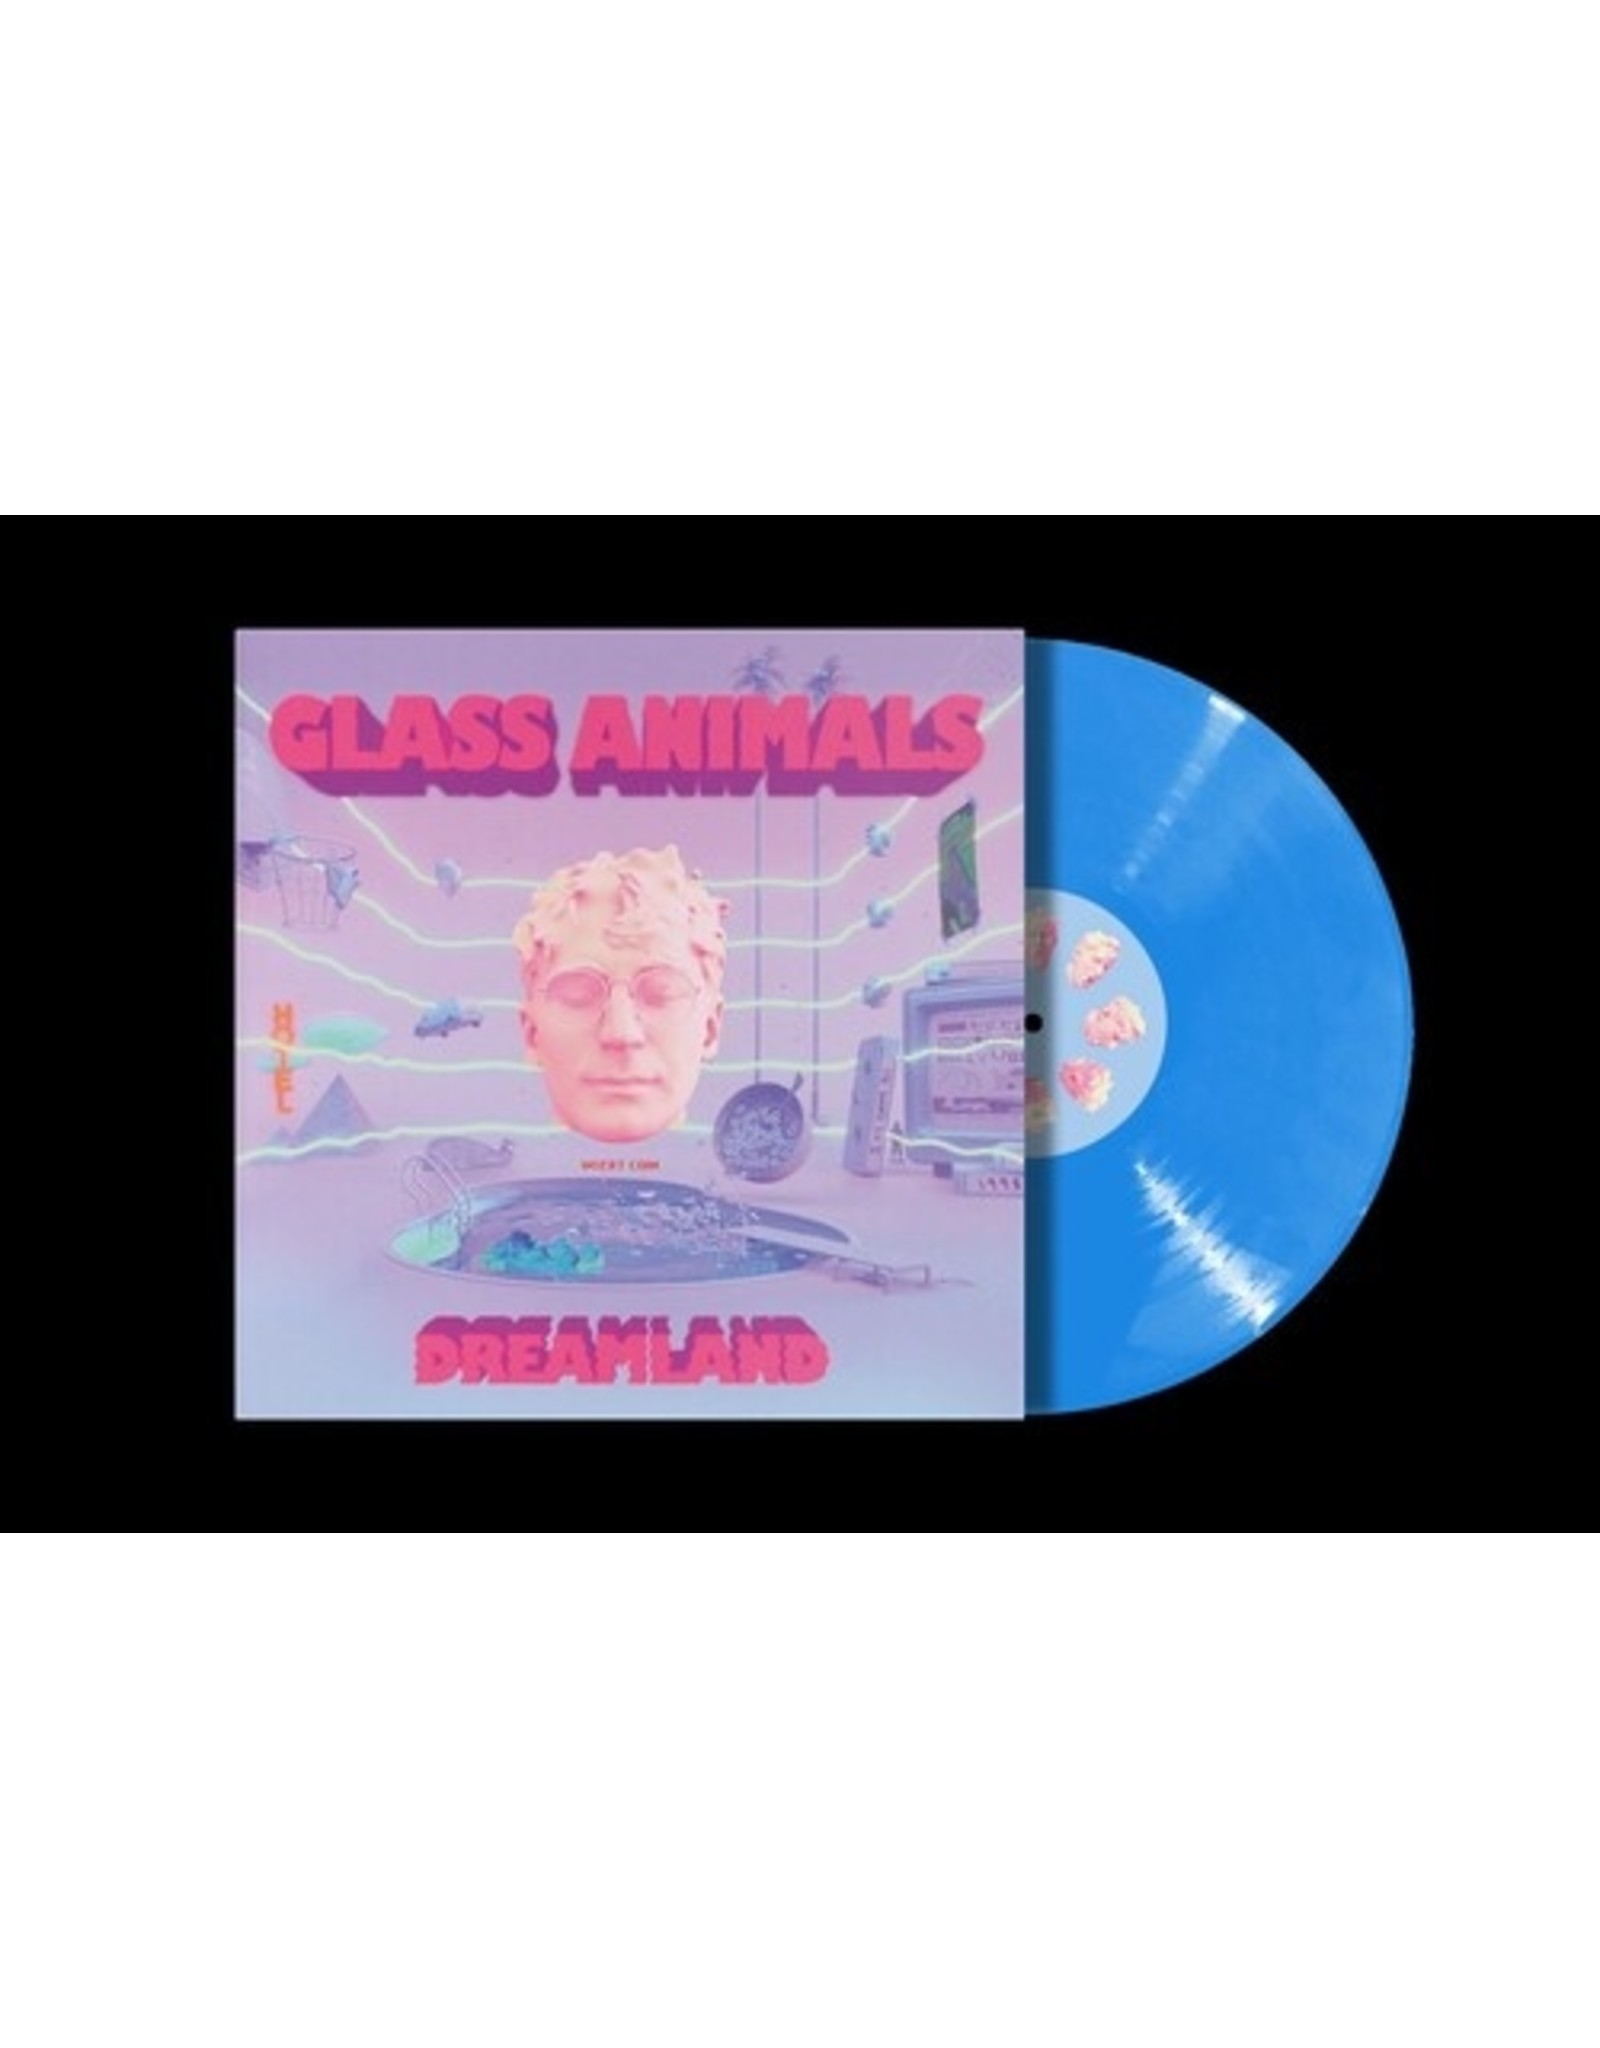 New Vinyl Glass Animals - Dreamland (Colored) LP